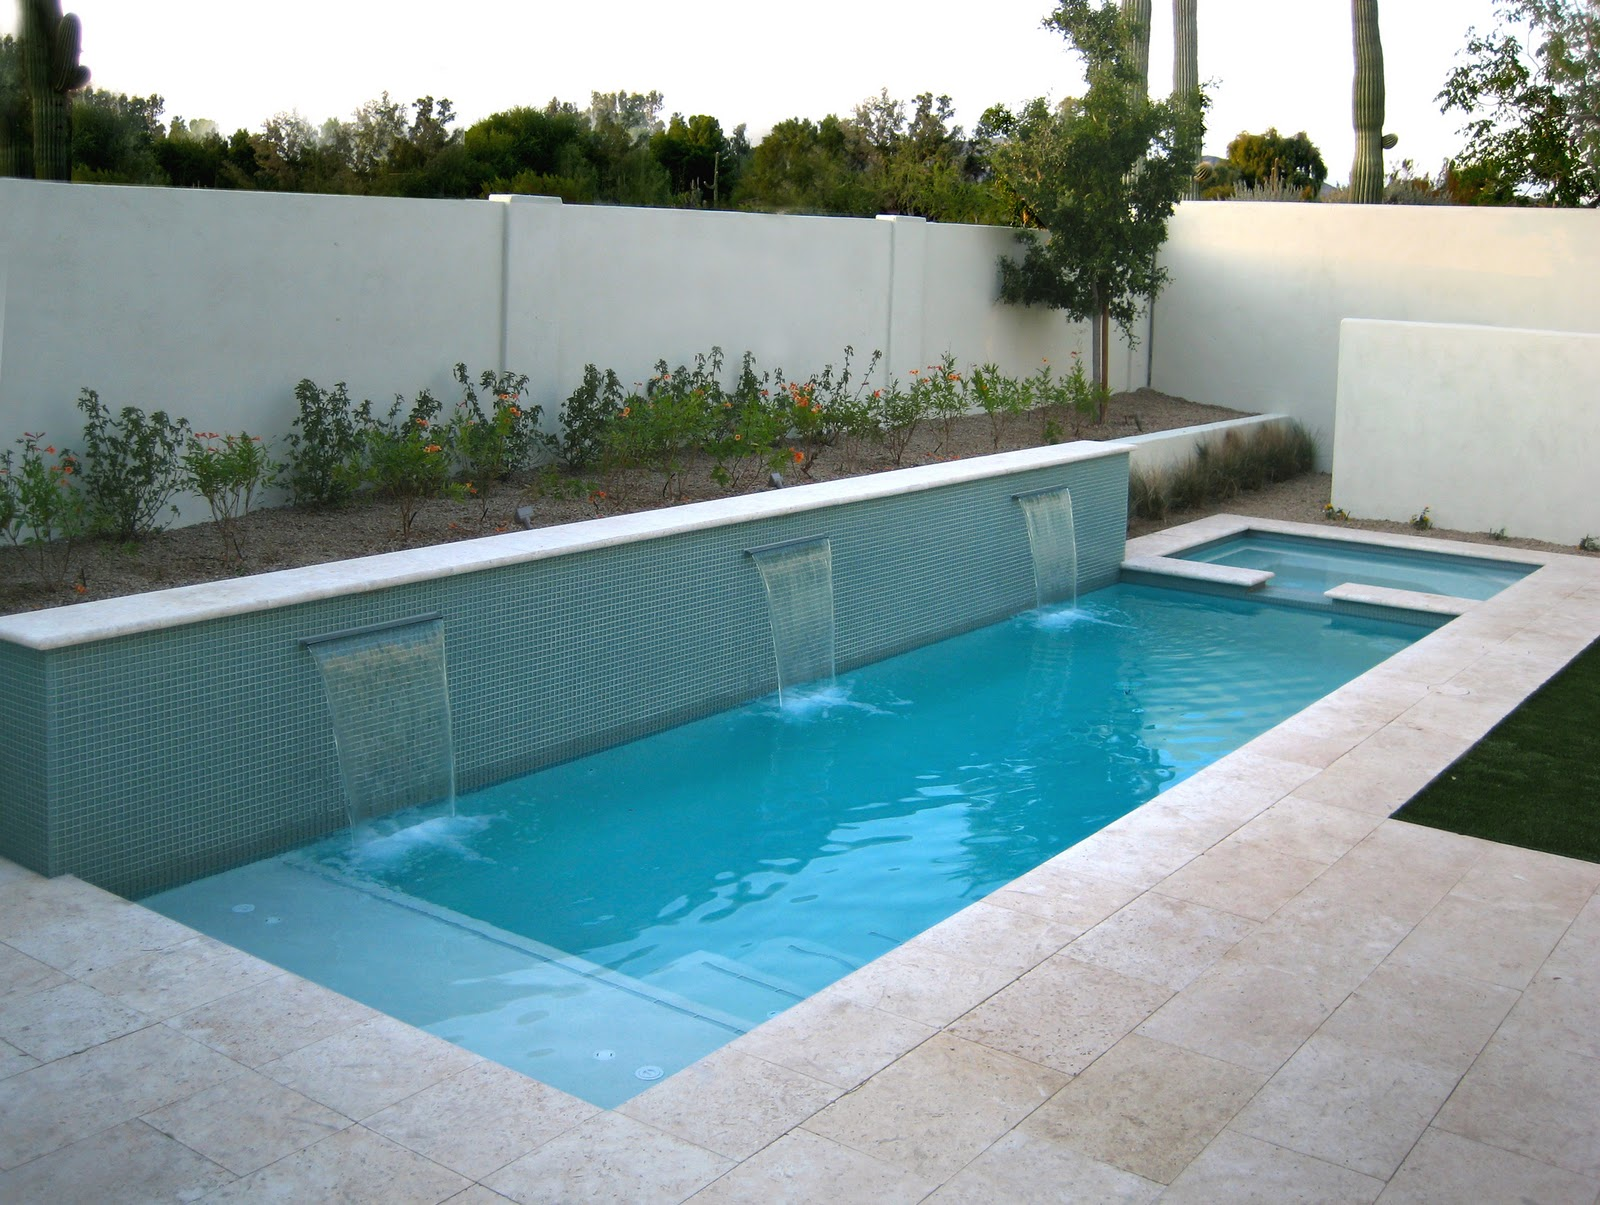 Swimming pools in small spaces alpentile glass tile for Small backyard swimming pool designs